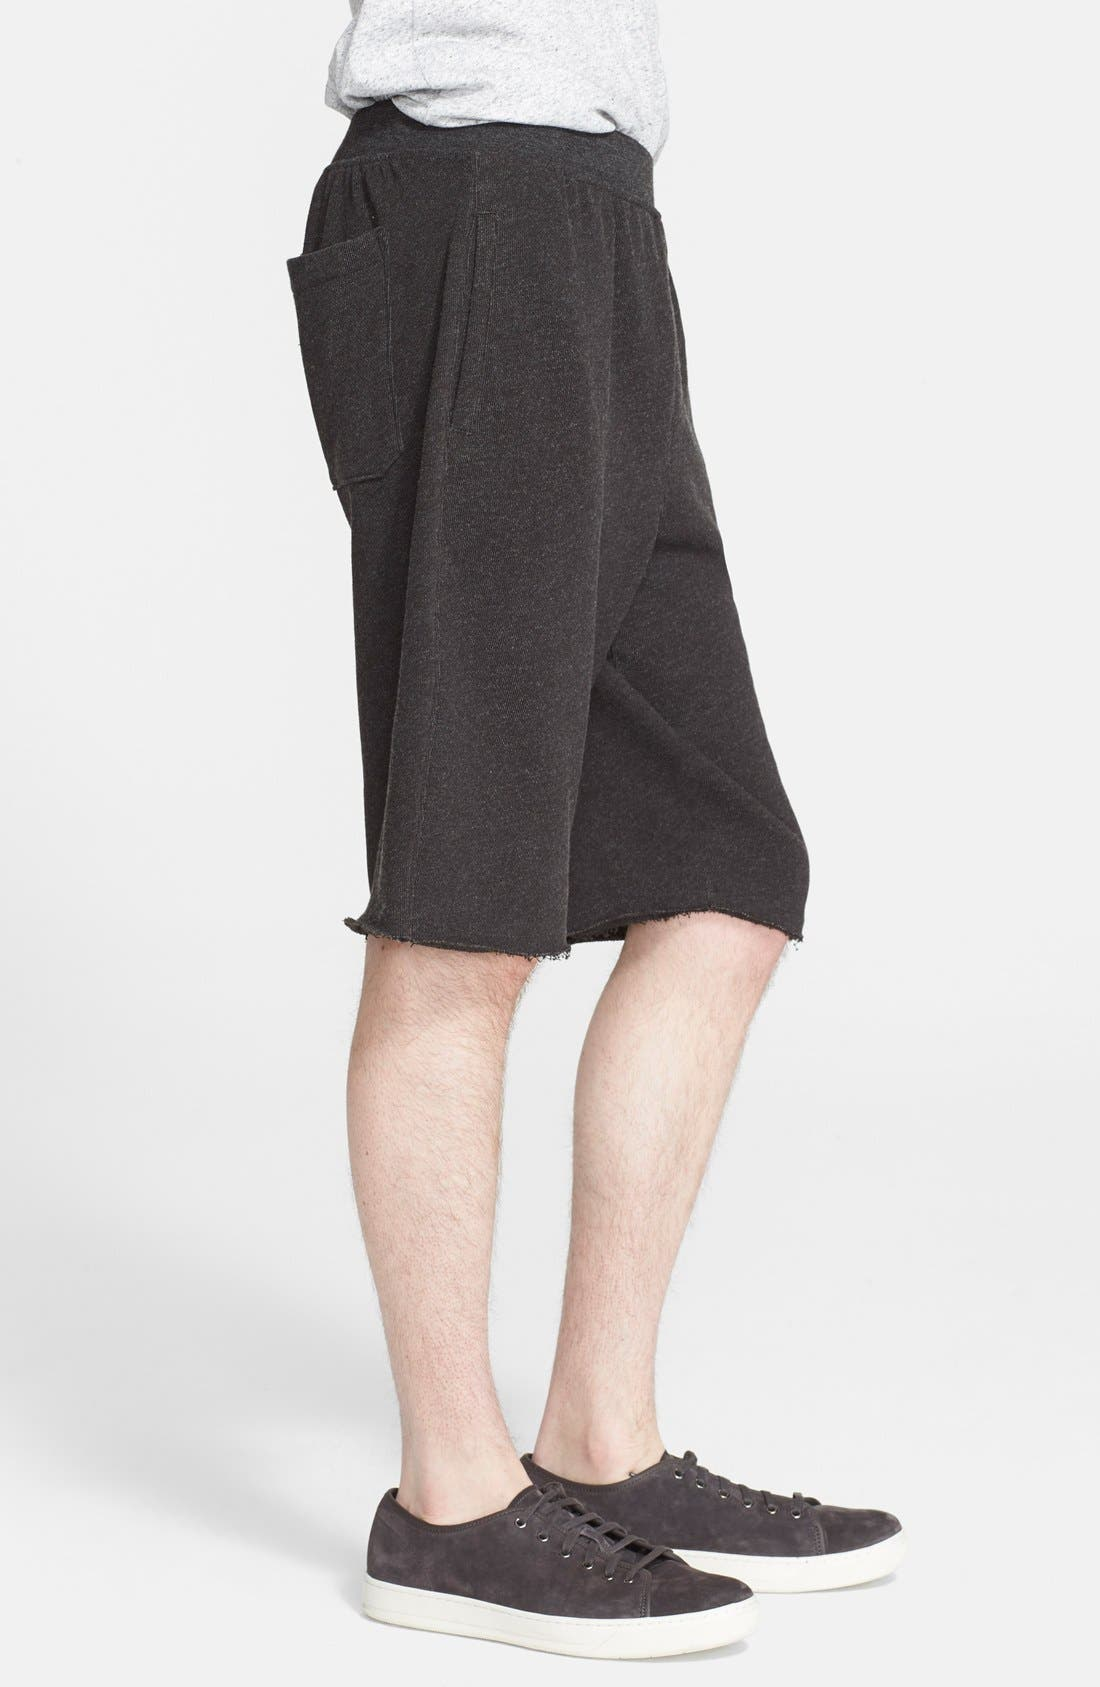 Cutoff Sweat Shorts,                             Alternate thumbnail 4, color,                             021